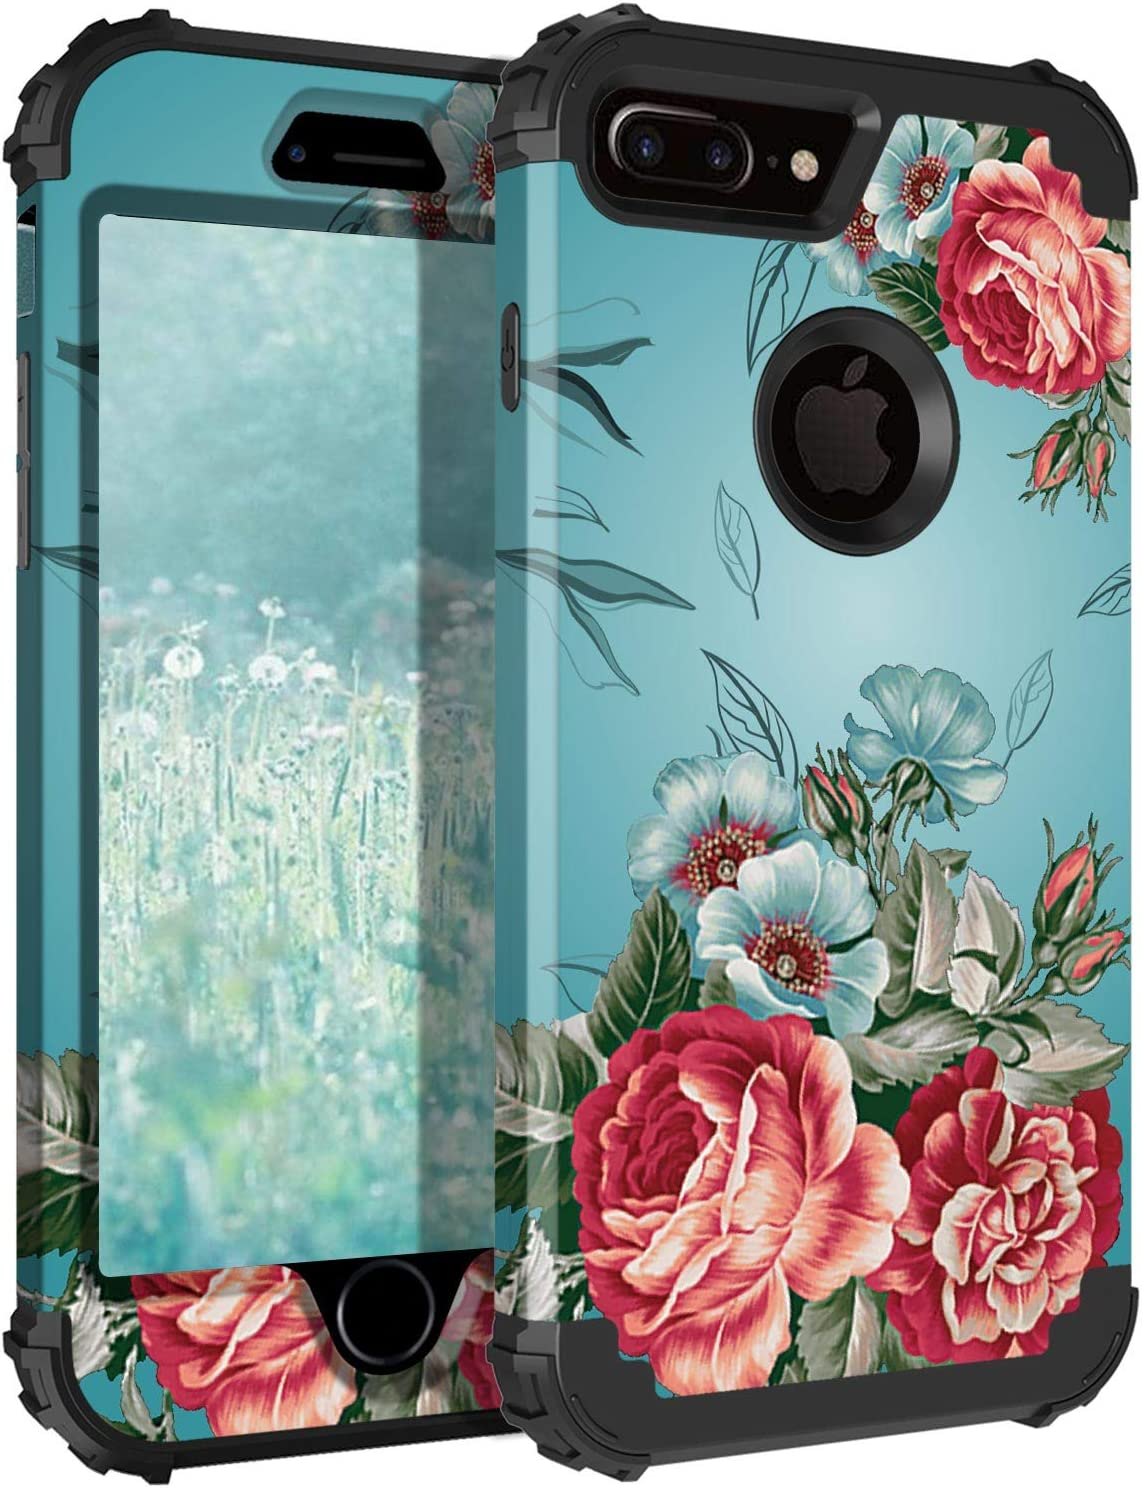 Lontect for iPhone 8 Plus Case, iPhone 7 Plus Case Floral 3 in 1 Heavy Duty Hybrid Sturdy High Impact Shockproof Protective Cover Case for Apple iPhone 8 Plus/iPhone 7 Plus, Teal/Red Flower